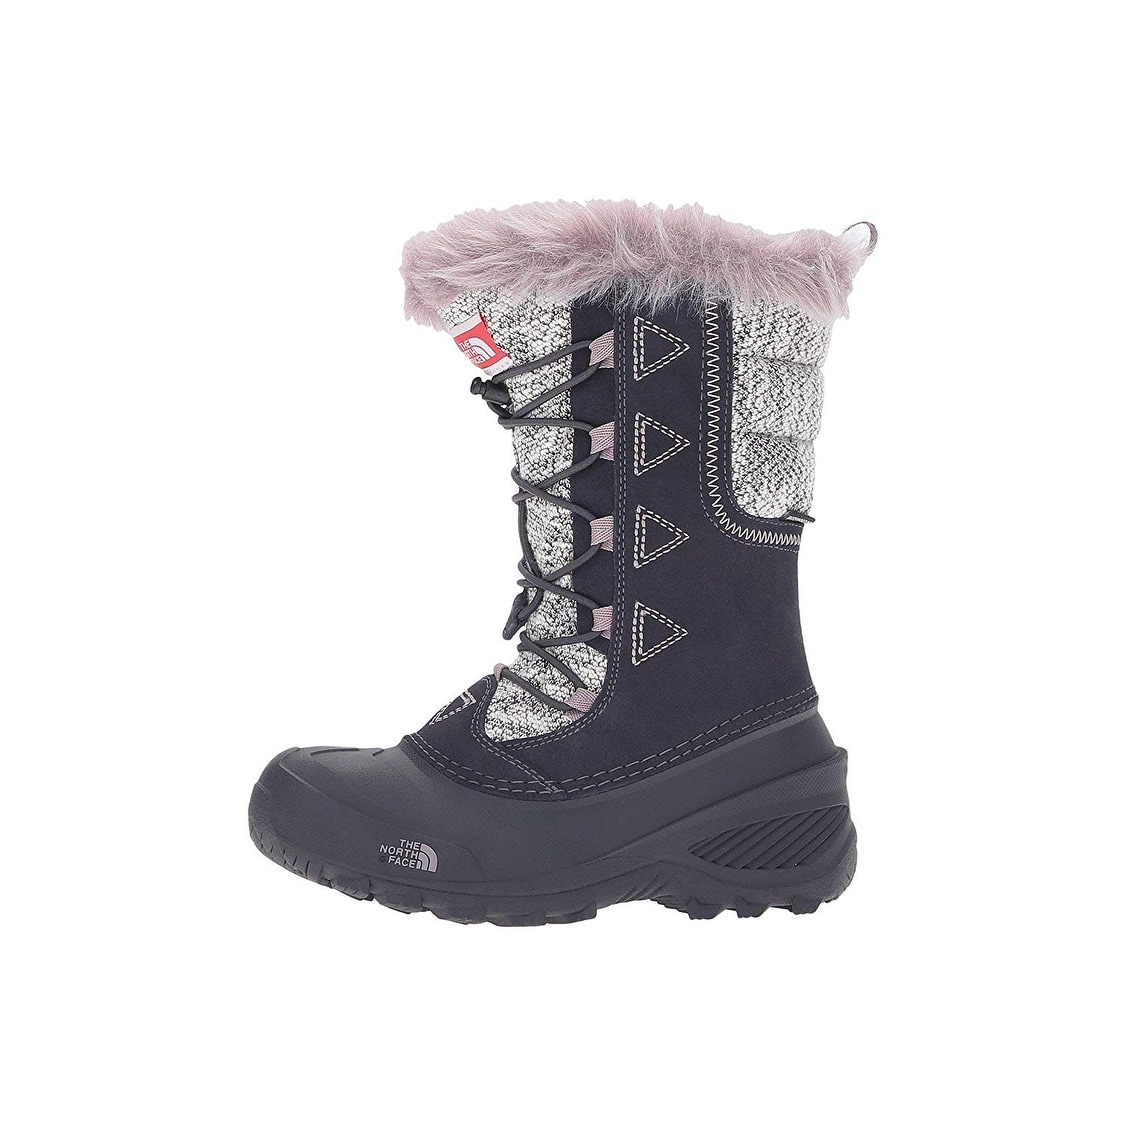 aeab846d6 The North Face Girl Shellista Lace Novelty II Winter Boot Shoes - nine iron  grey/quail grey - 3 little kid m